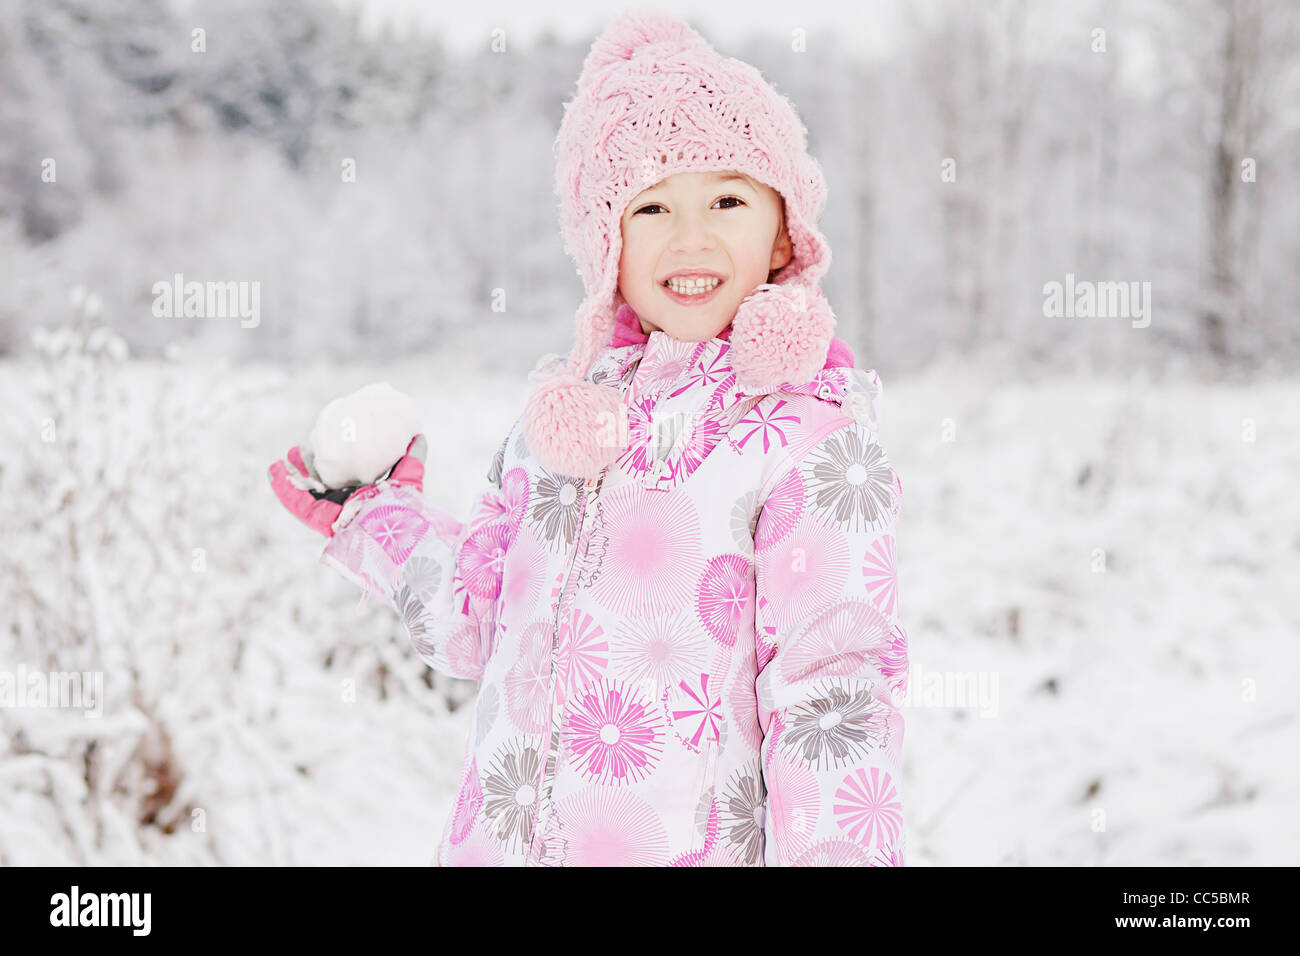 a portrait of a girl with a snowball - Stock Image